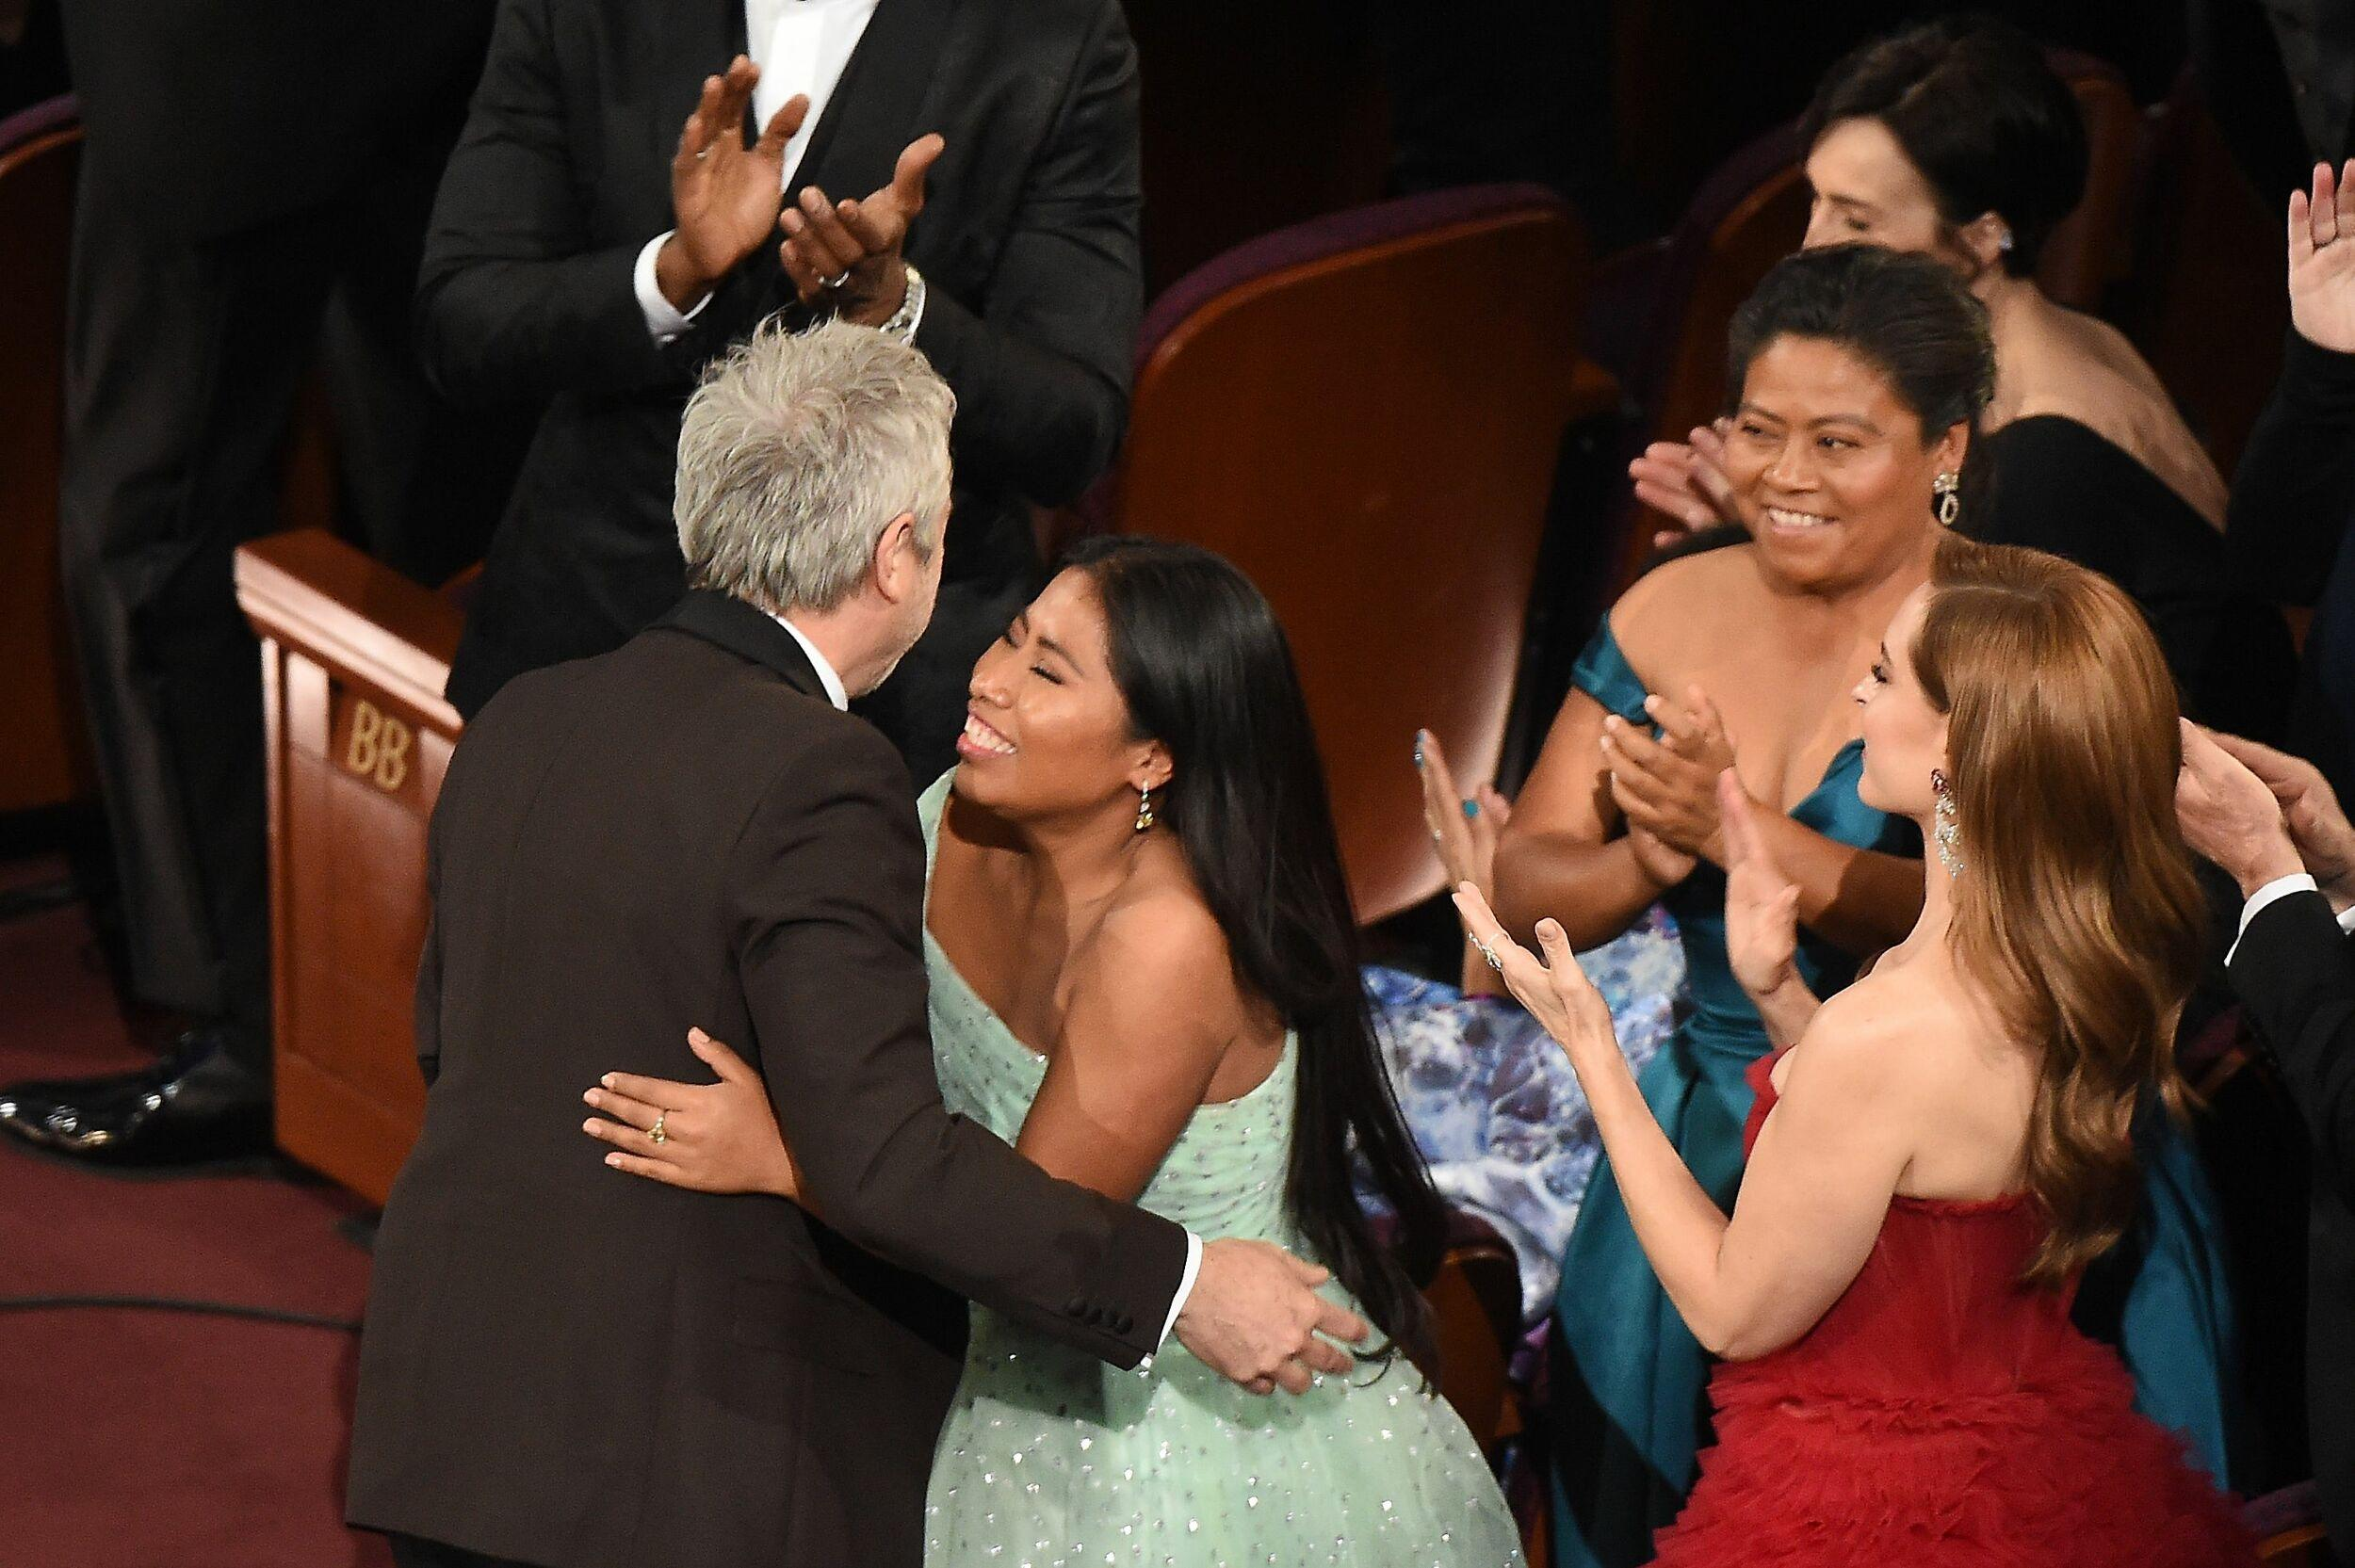 Mexican director Alfonso Cuaron kisses Mexican actress Yalitza Aparicio during the 91st Annual Academy Awards at the Dolby Theatre in Hollywood, California on February 24, 2019. (Photo by VALERIE MACON / AFP)        (Photo credit should read VALERIE MACON/AFP/Getty Images)